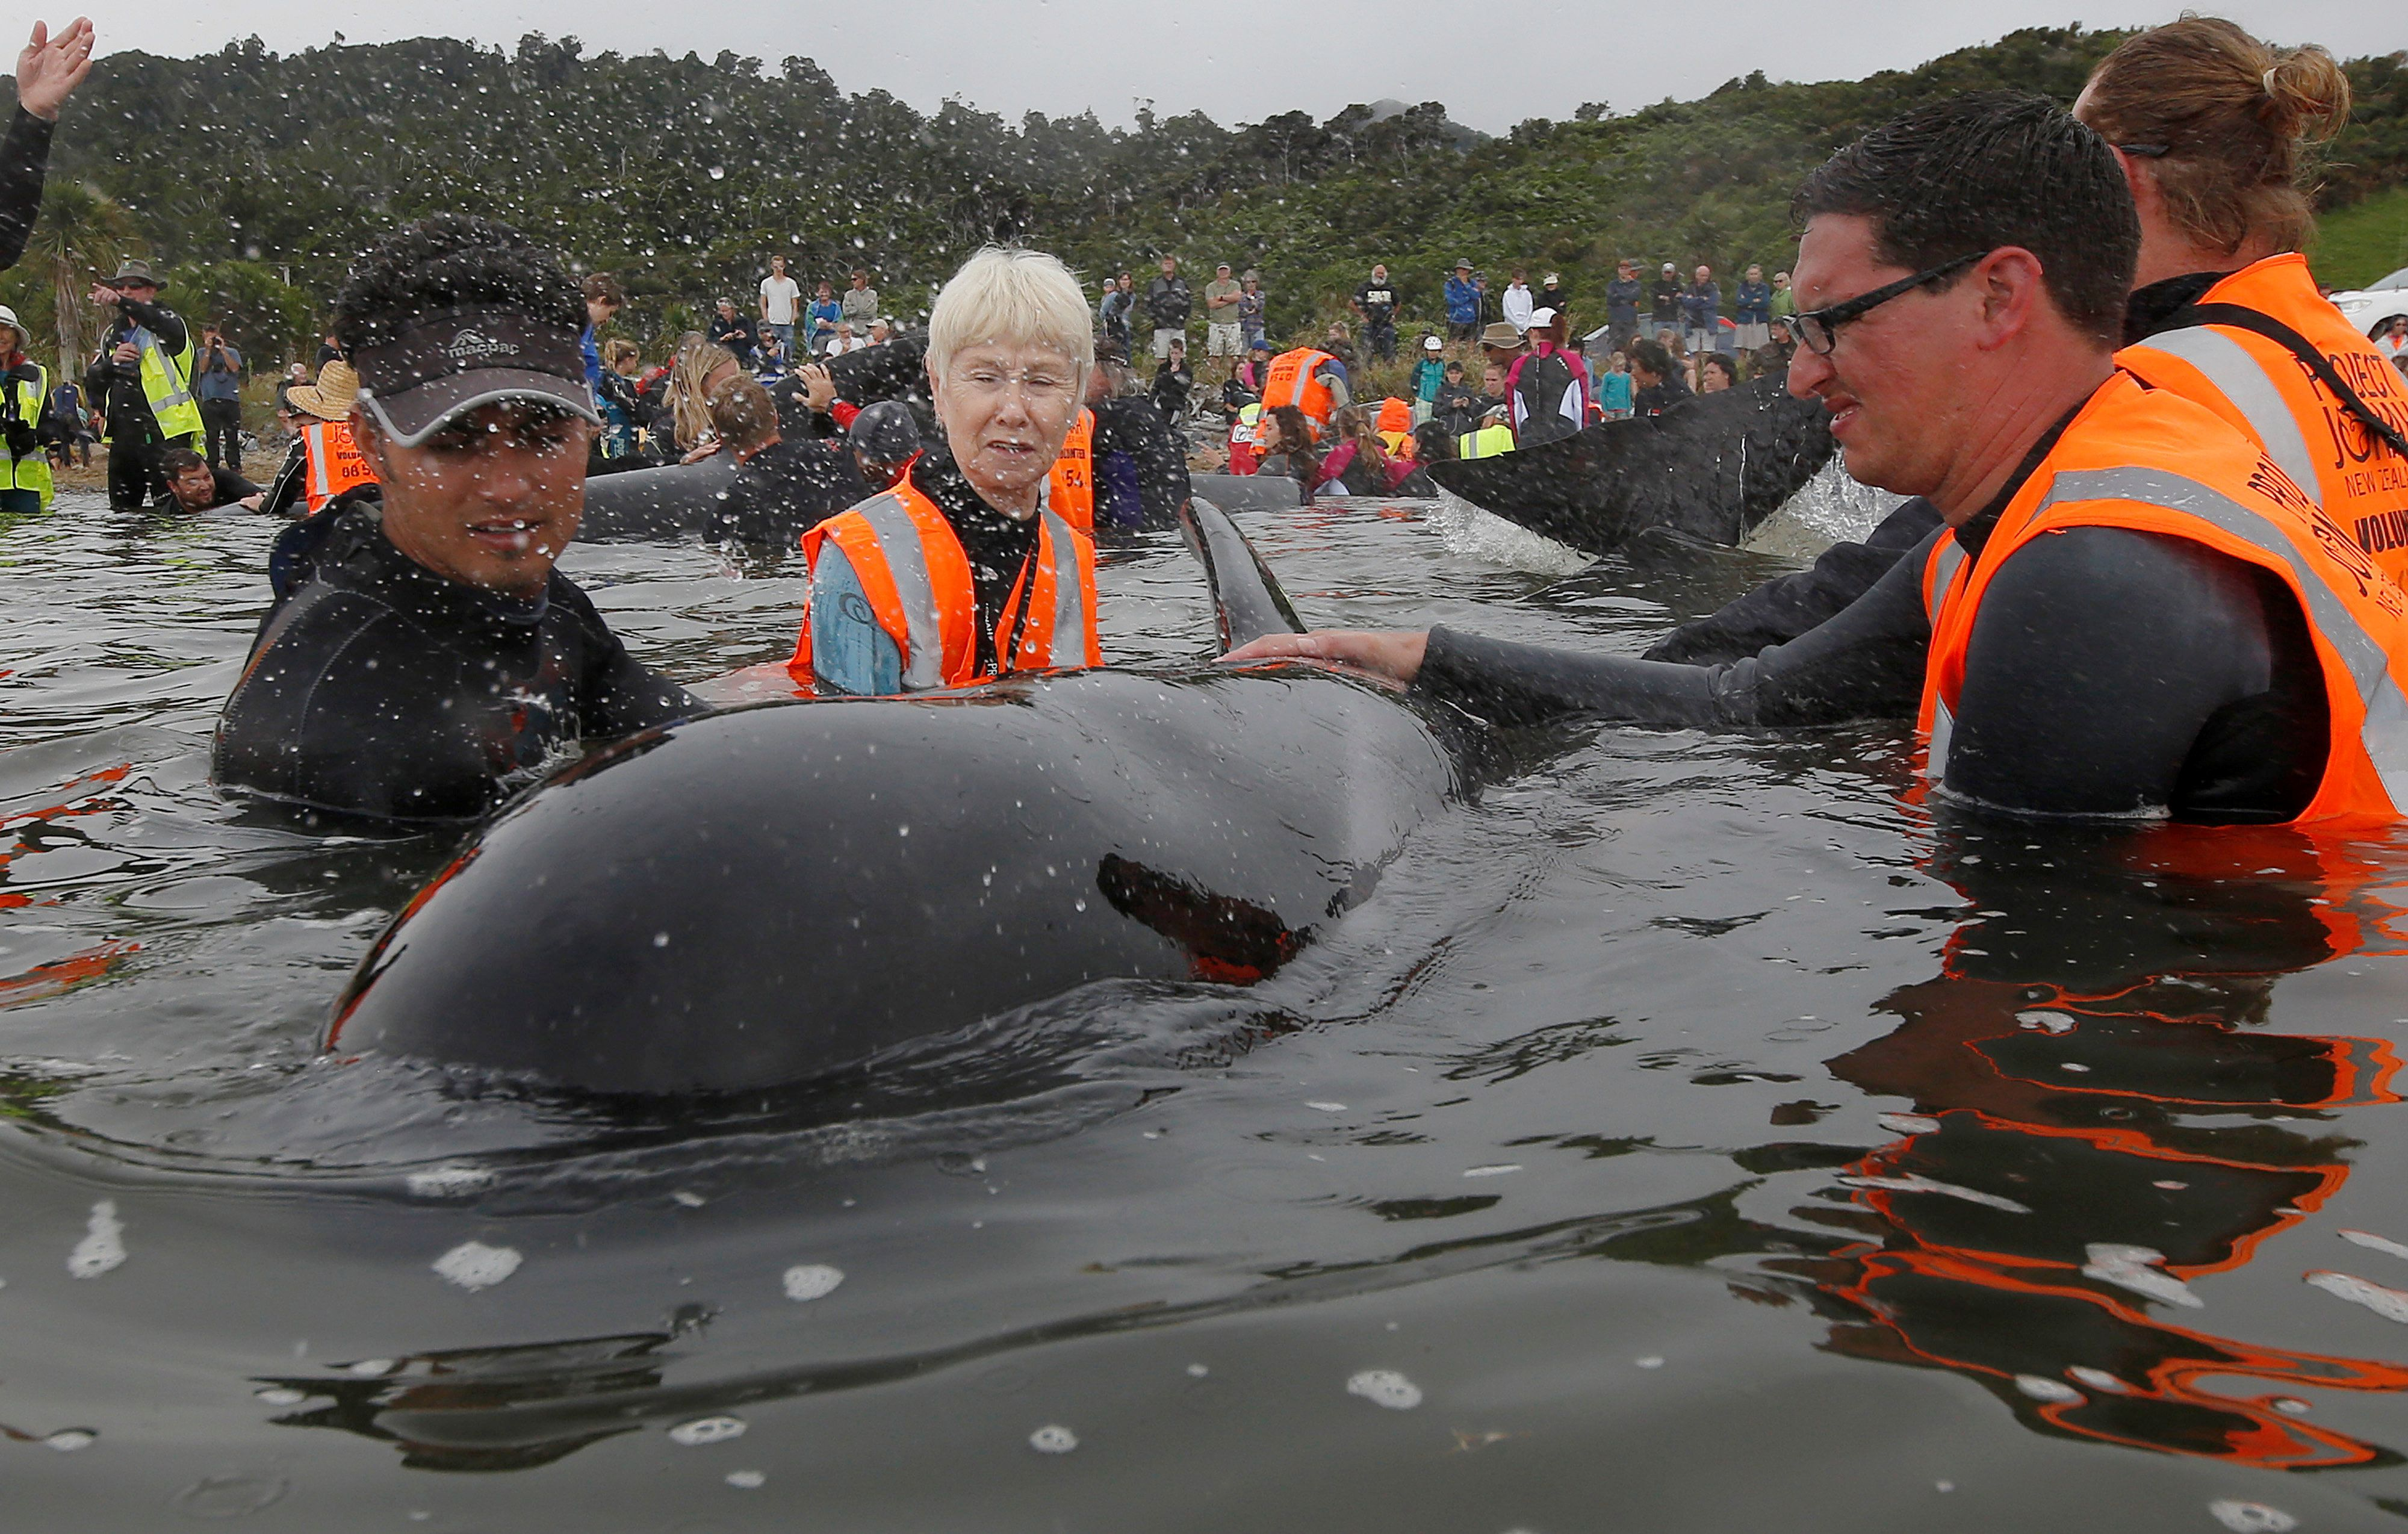 Volunteers look after a pod of stranded pilot whales as they prepare to refloat them after one of the country's largest recorded mass whale strandings, in Golden Bay, at the top of New Zealand's South Island, February 12, 2017.  REUTERS/Anthony Phelps